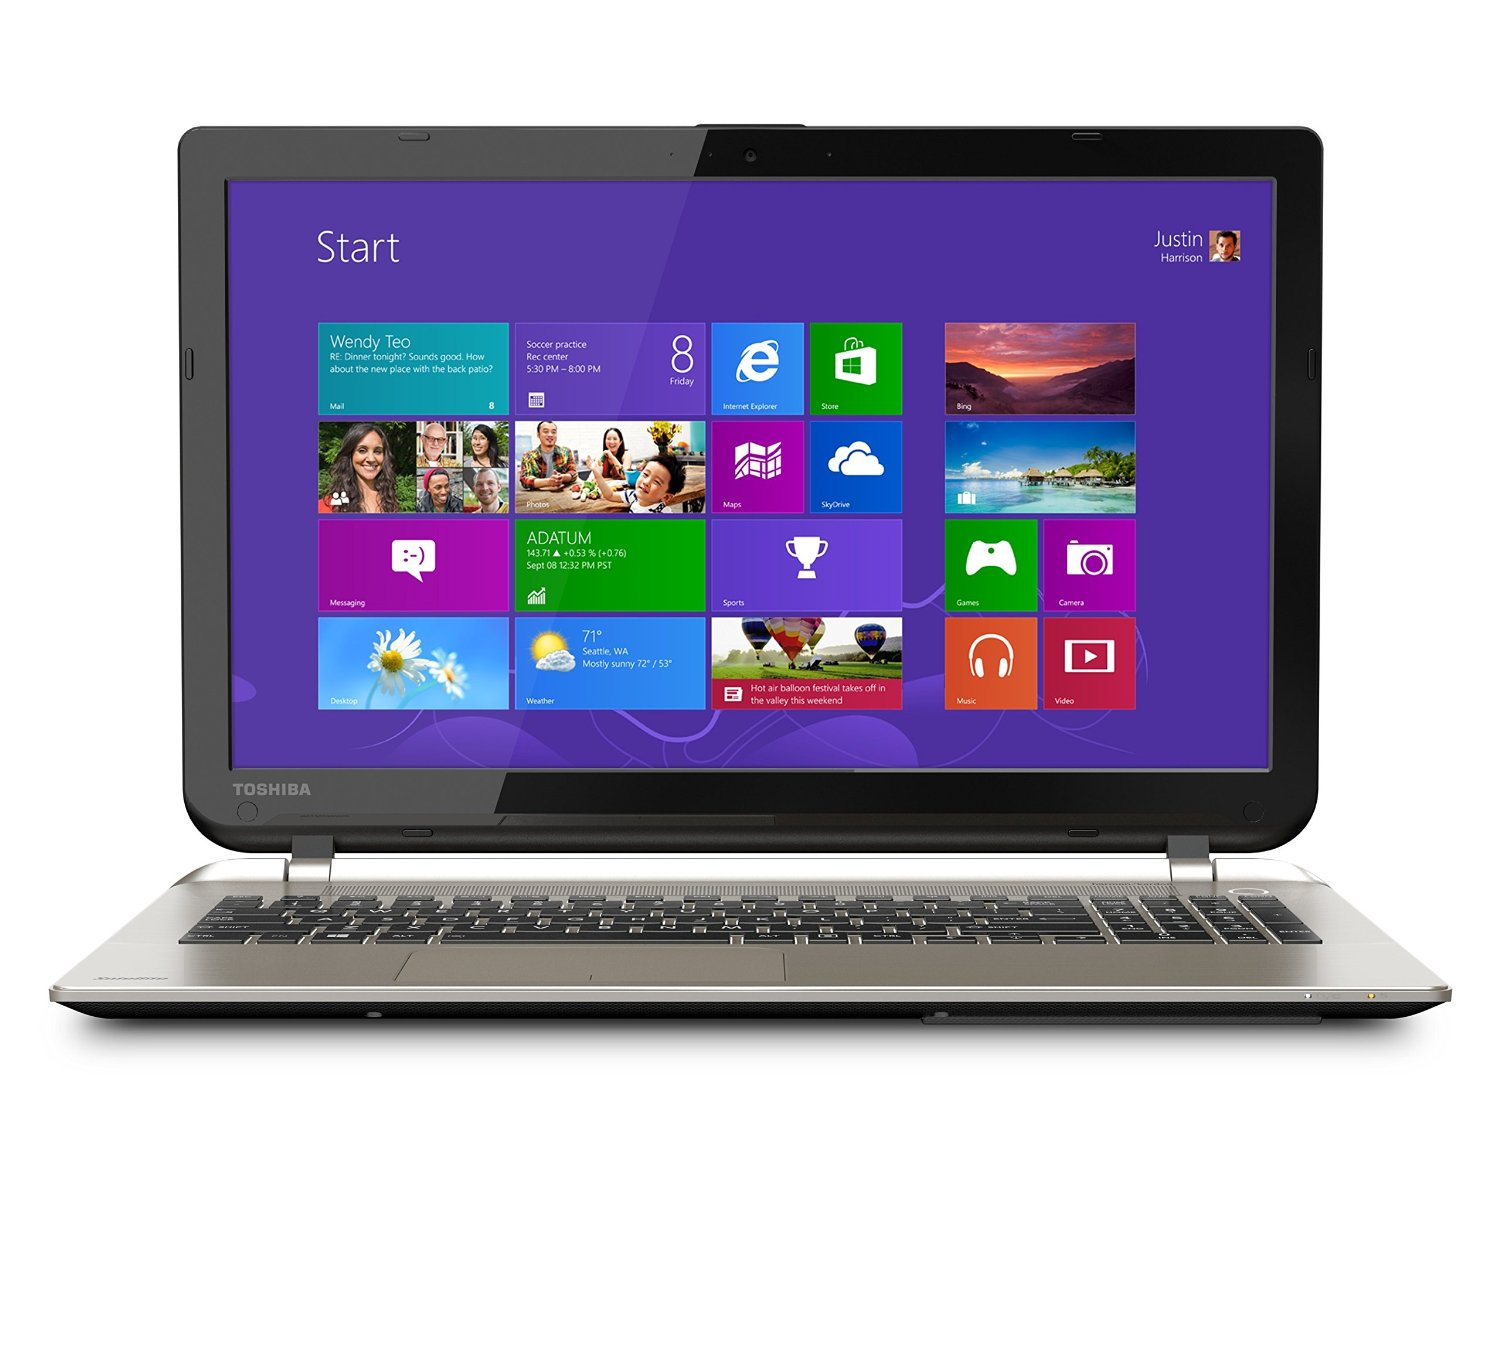 Toshiba Satellite S55-B5258 laptop